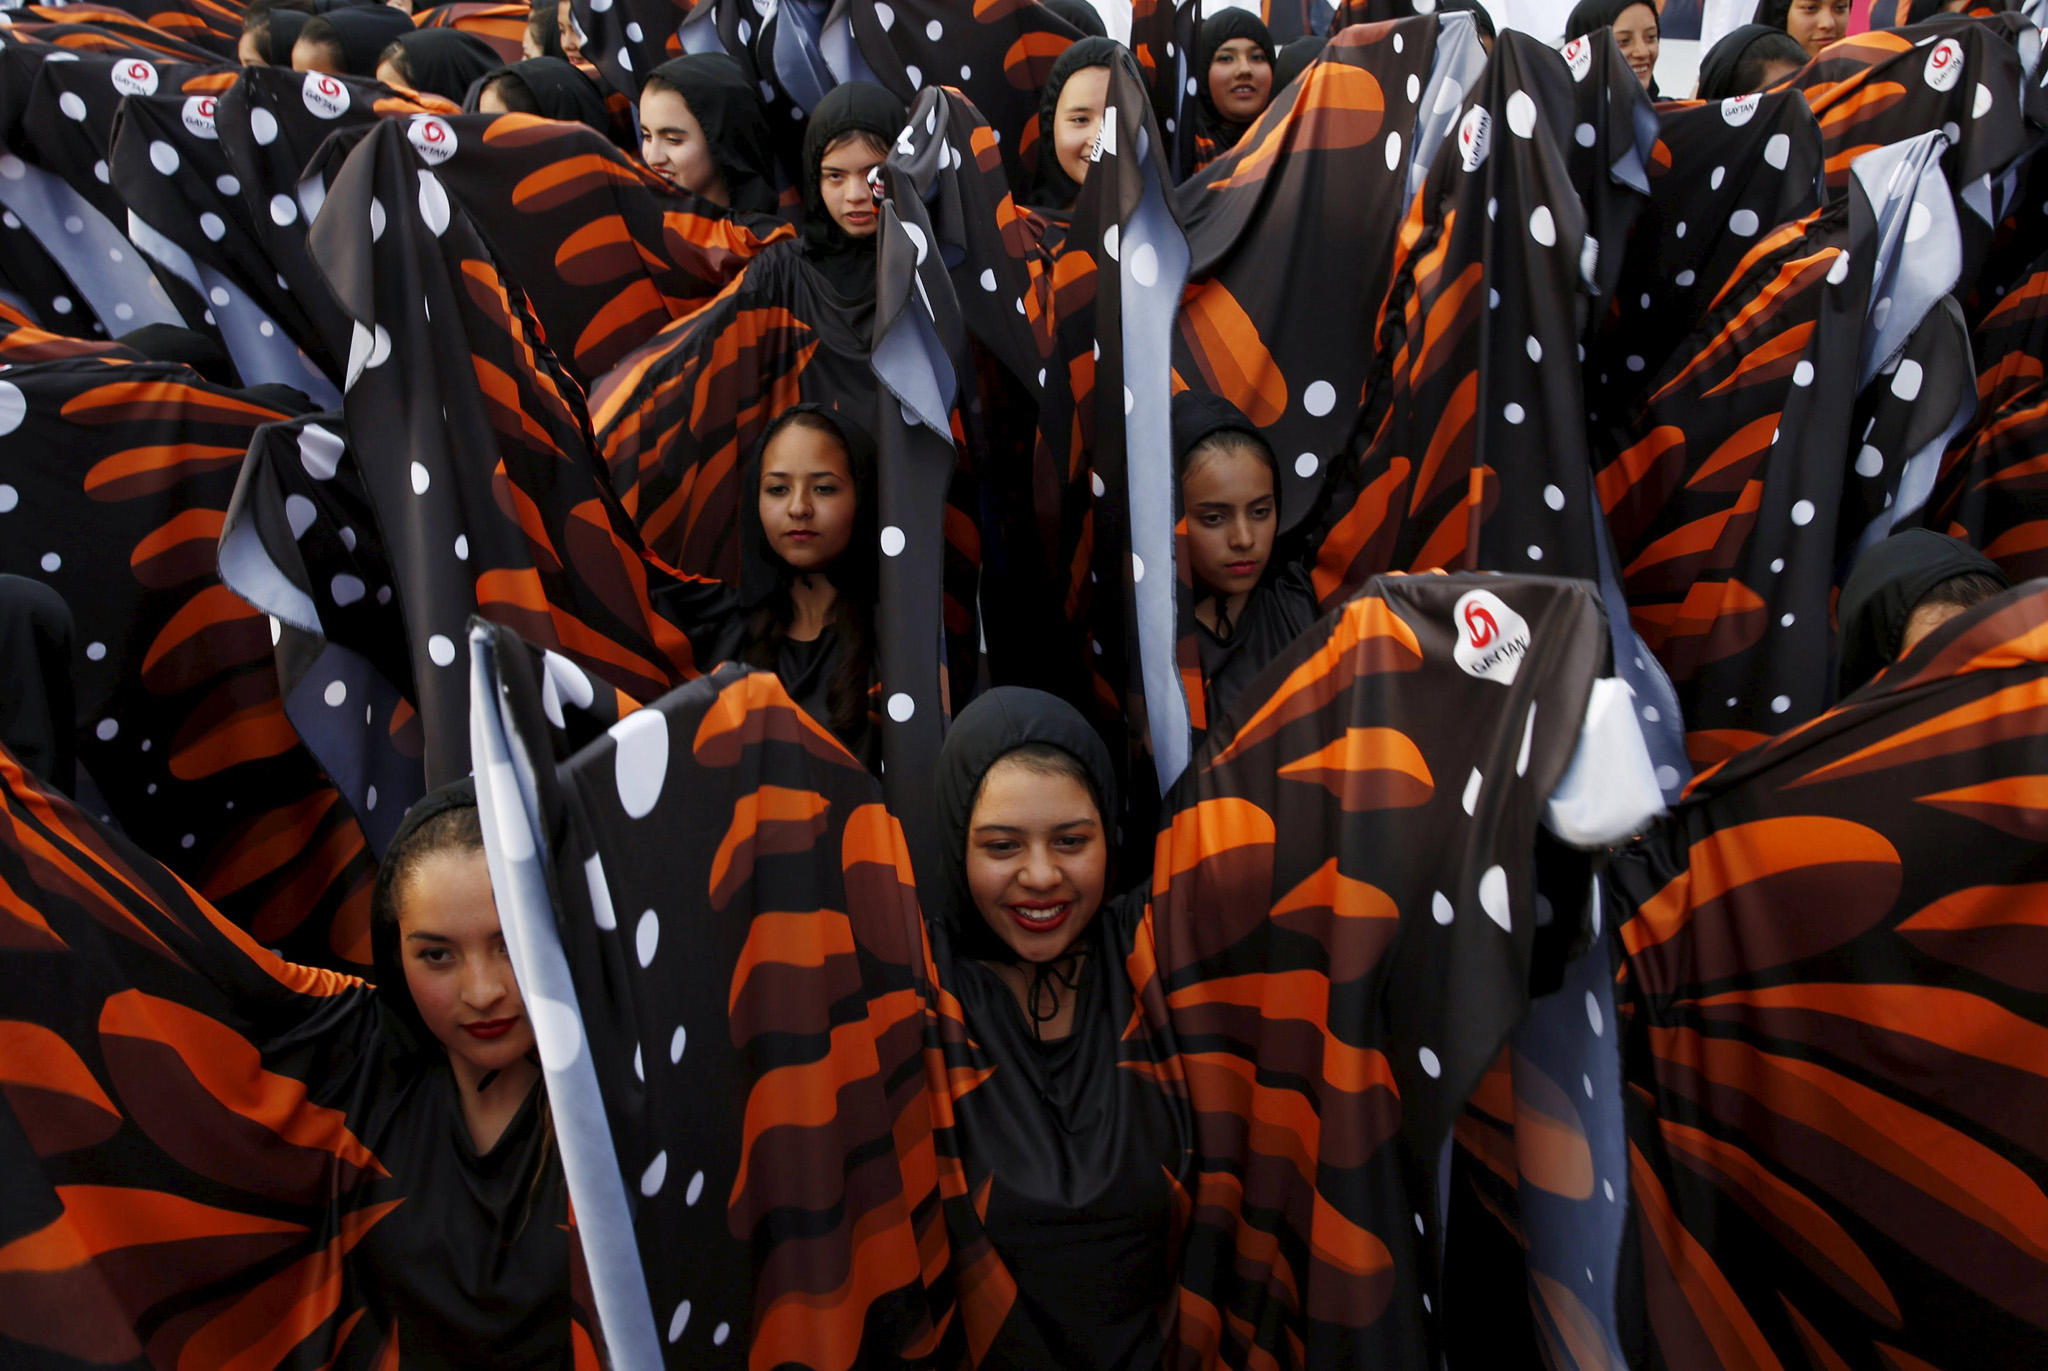 Girls dressed as butterflies perform during a meeting of Pope Francis (not pictured) and youths at the Jose Maria Morelos y Pavon stadium in Morelia, Mexic